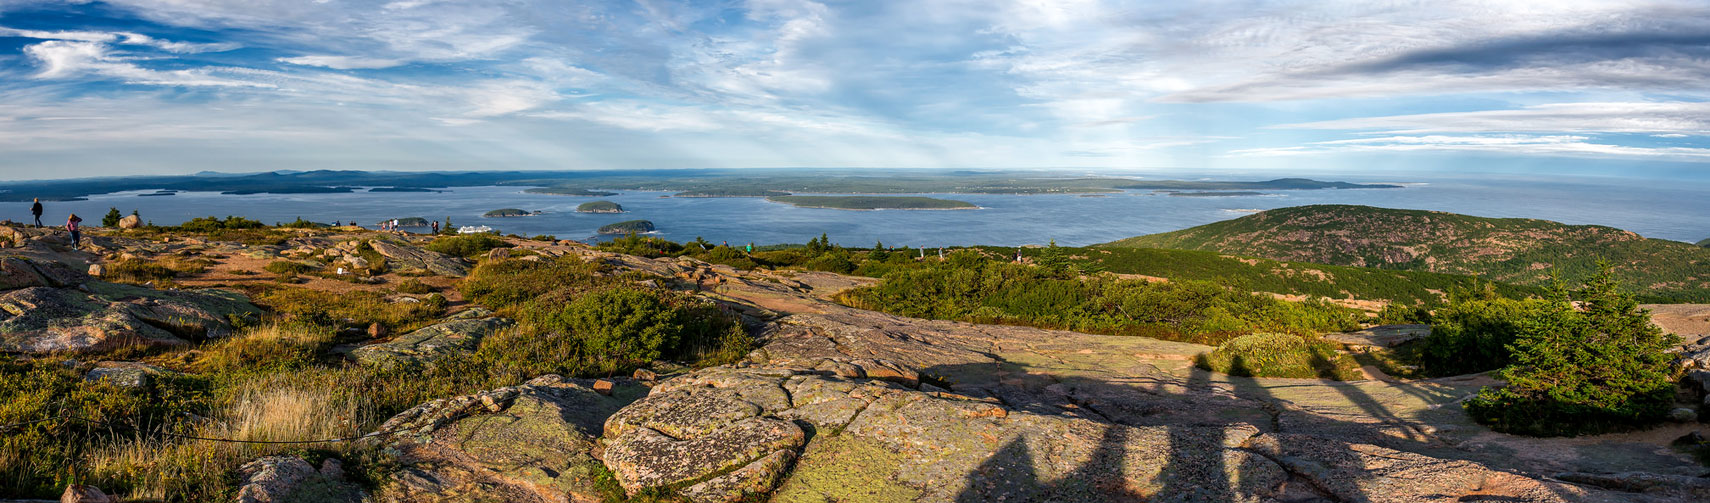 View from Cadillac Mountain on Mount Desert Island, Maine